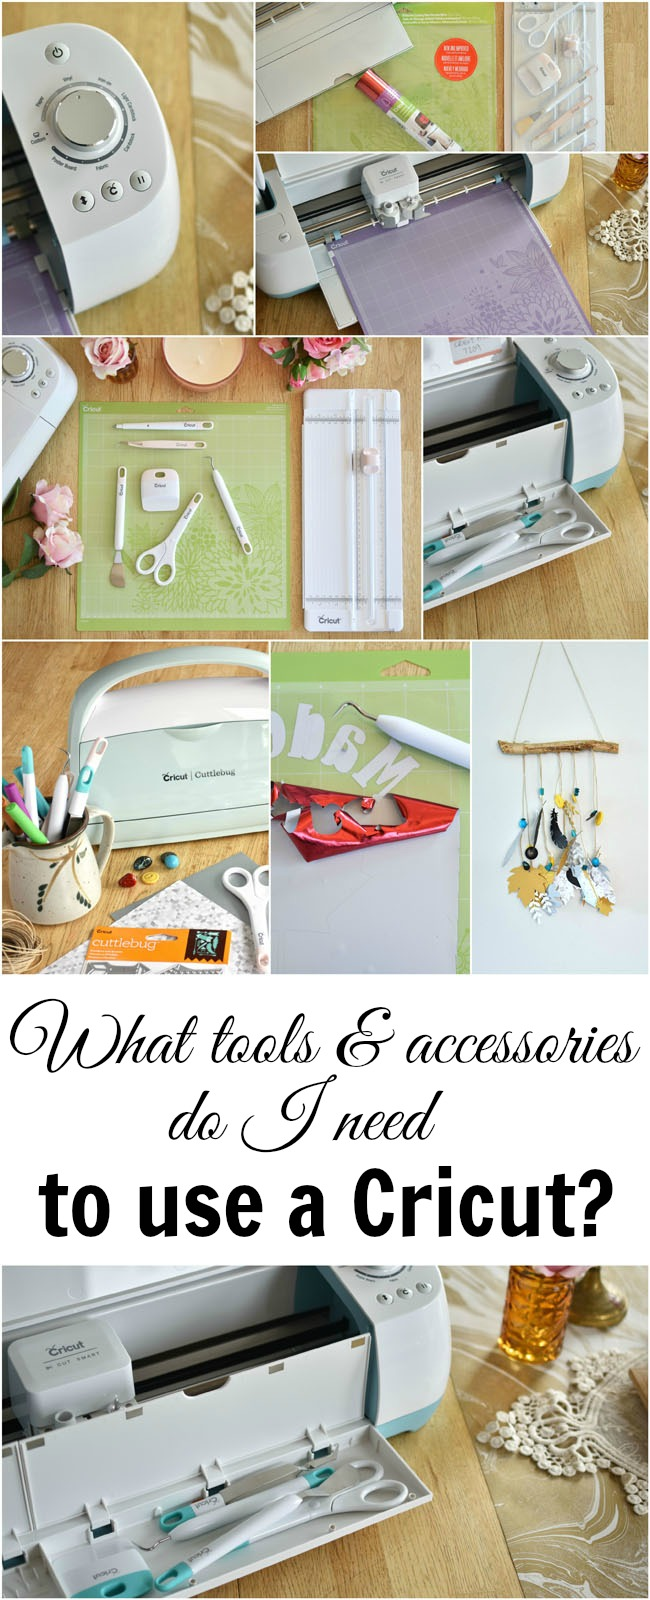 I have a Cricut, now what do I do with it? What accessories do I absolutely have to have and how much will they cost me?